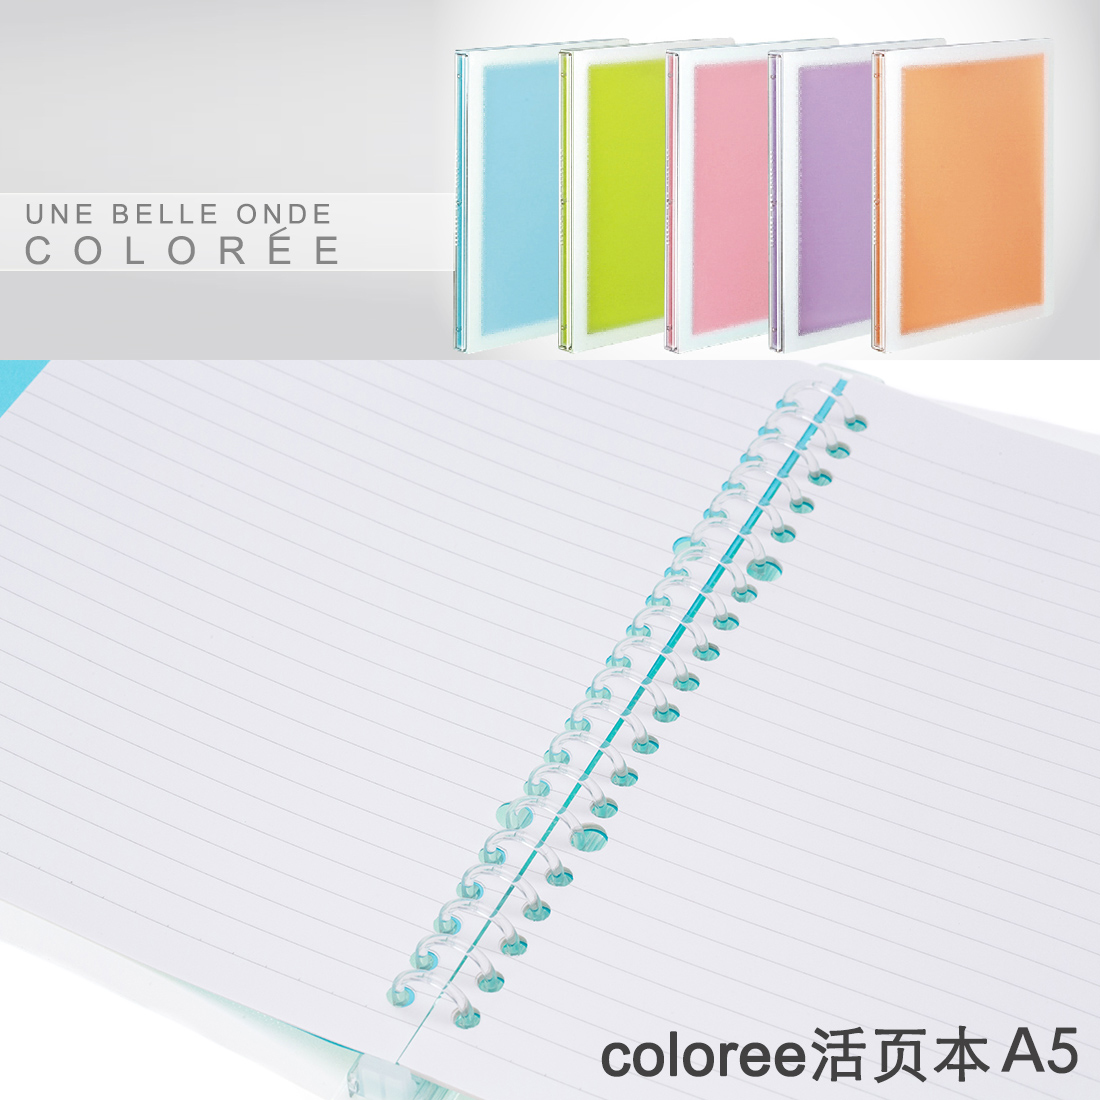 Japan kokuyo kokuyo coloree binder this a5/transparent beautiful colorful cover